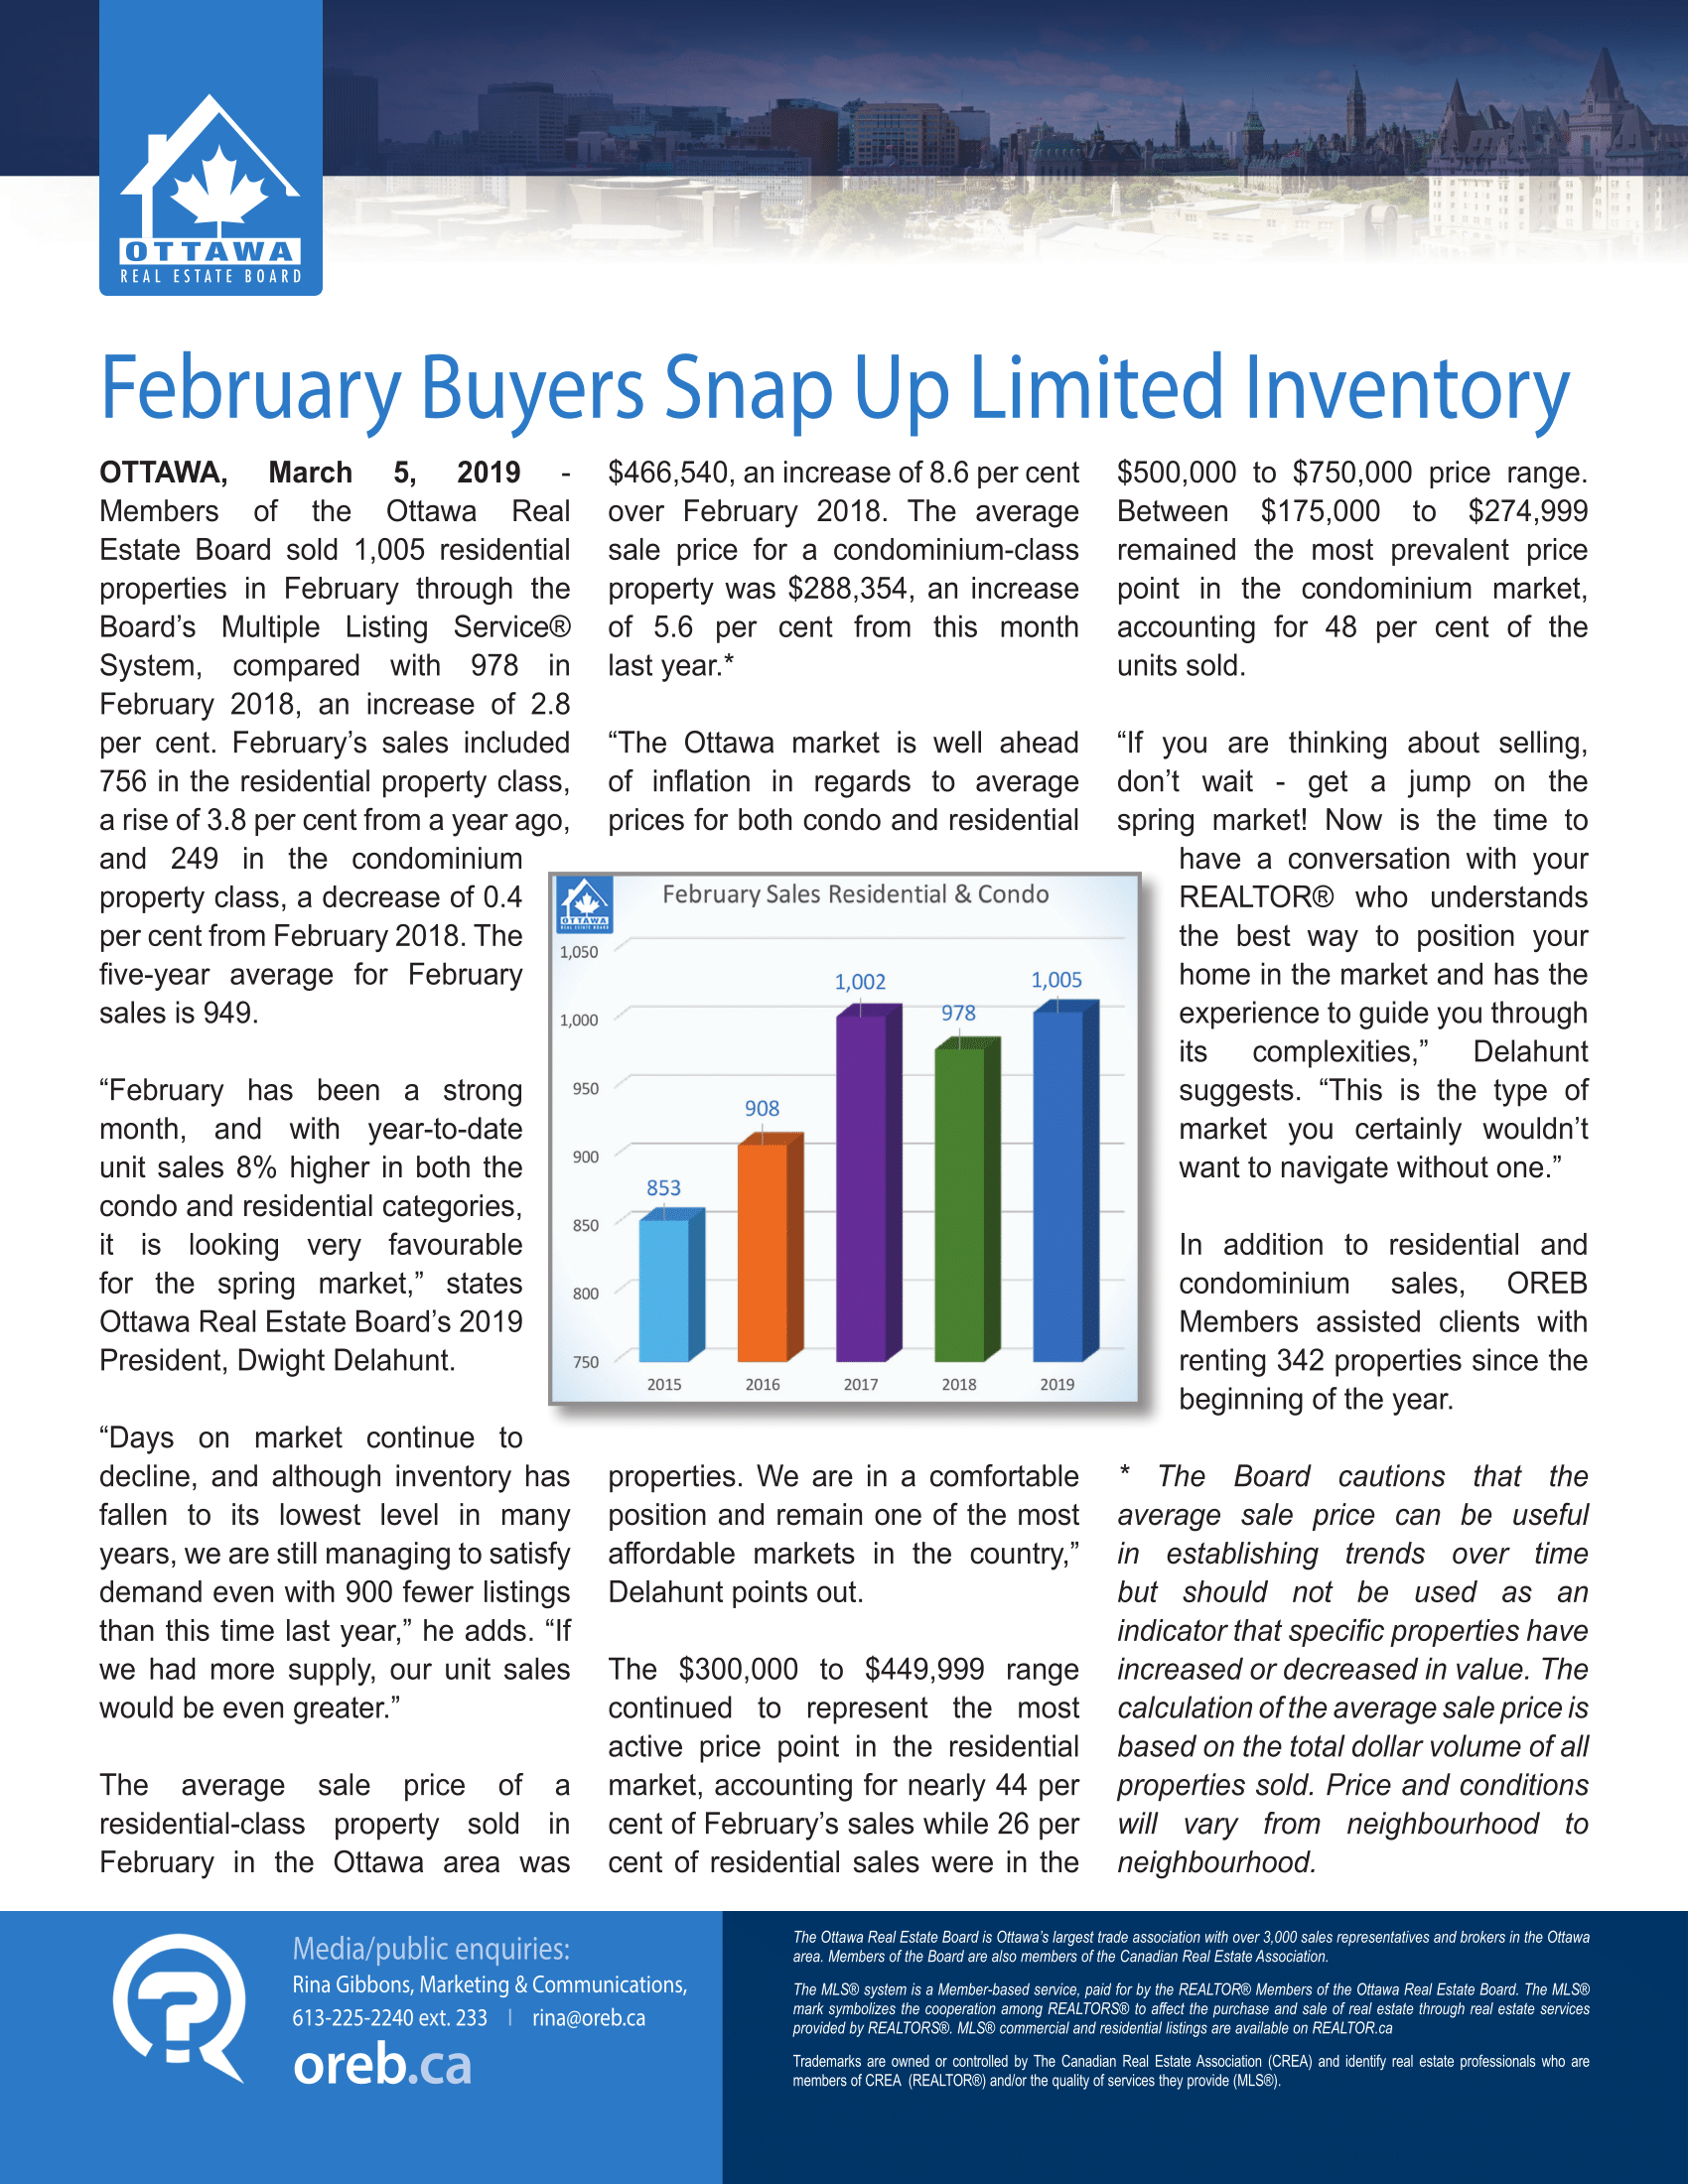 OREB-News-Release-February-2019-1.png